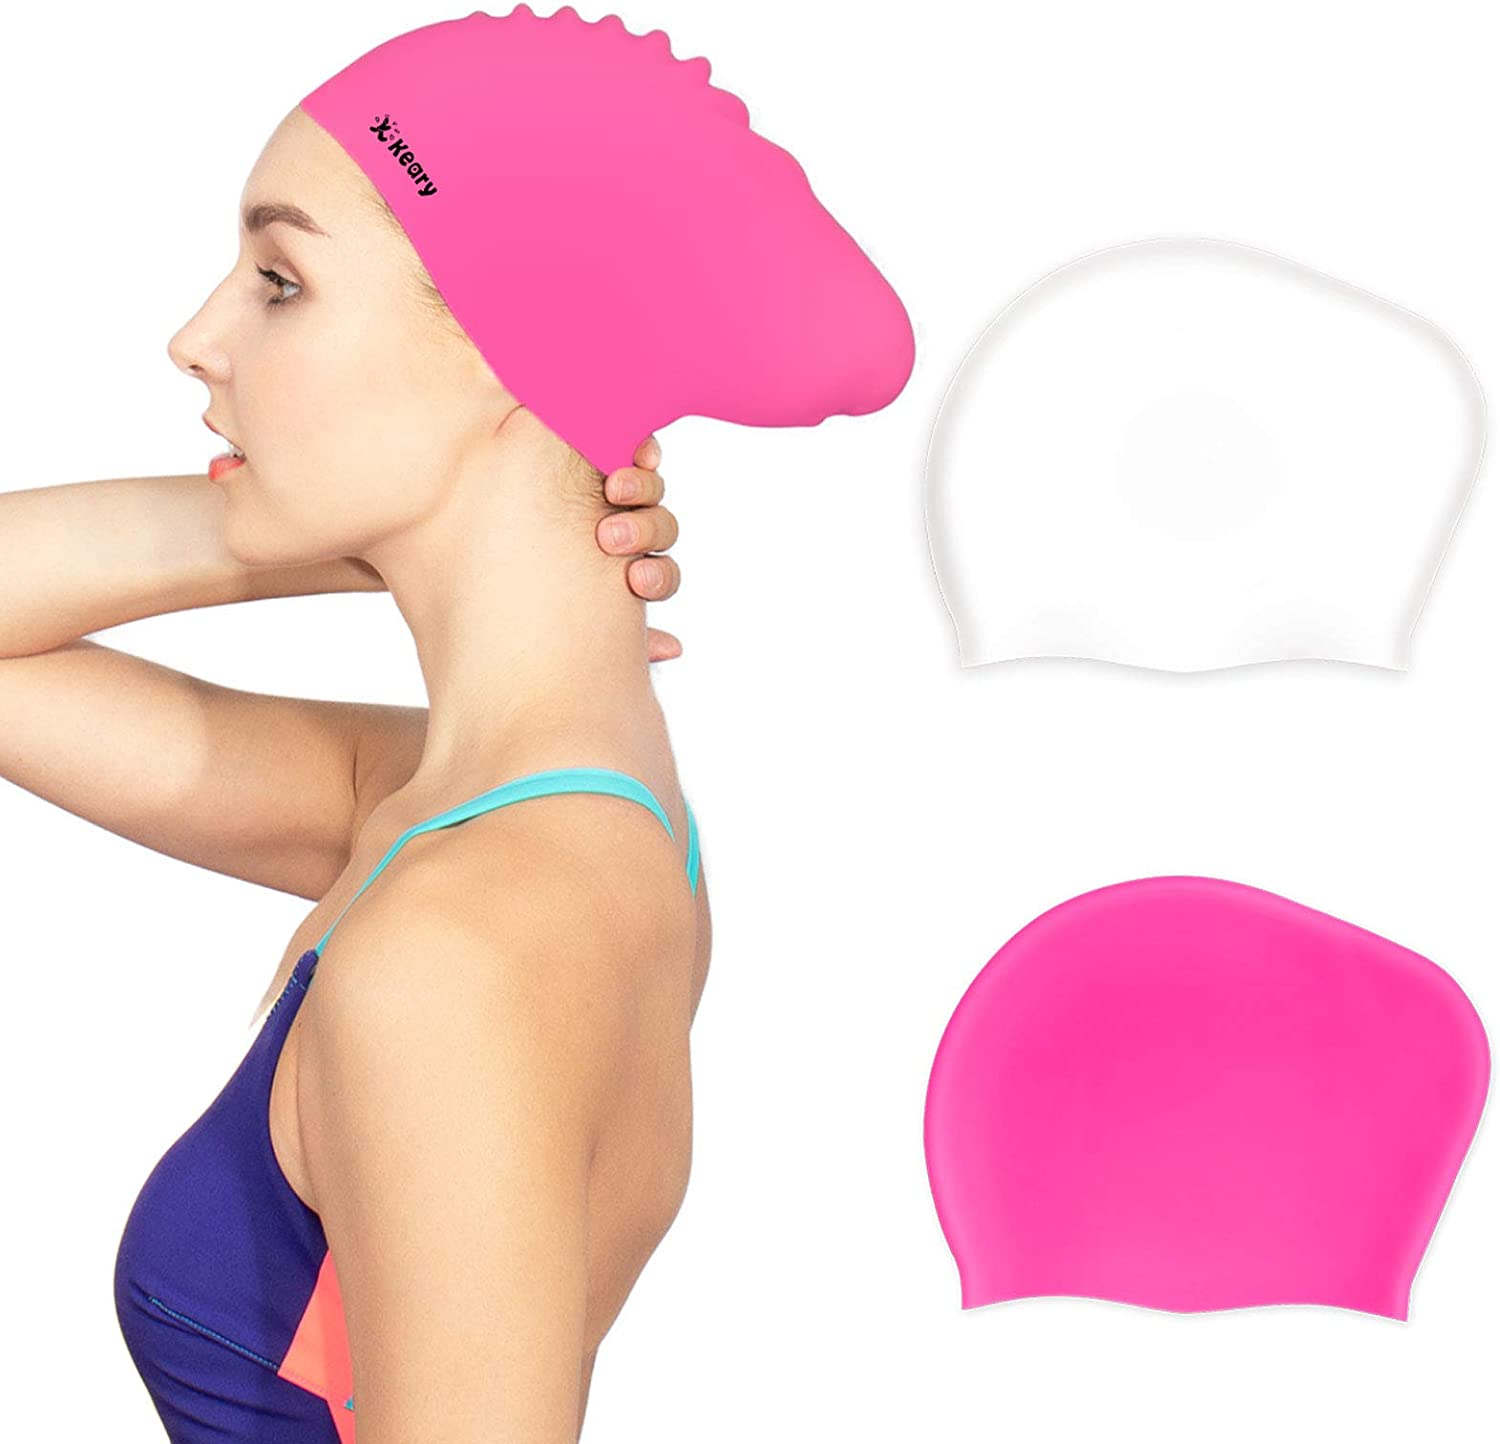 Keary 2 Pack Updated Silicone Swim Cap for Long Hair Women Girl Waterproof Bathing Pool Swimming Cap Cover Ears to Keep Your Hair Dry, 3D Soft Stretchable Durable and Anti-Slip, Easy to Put On and Off